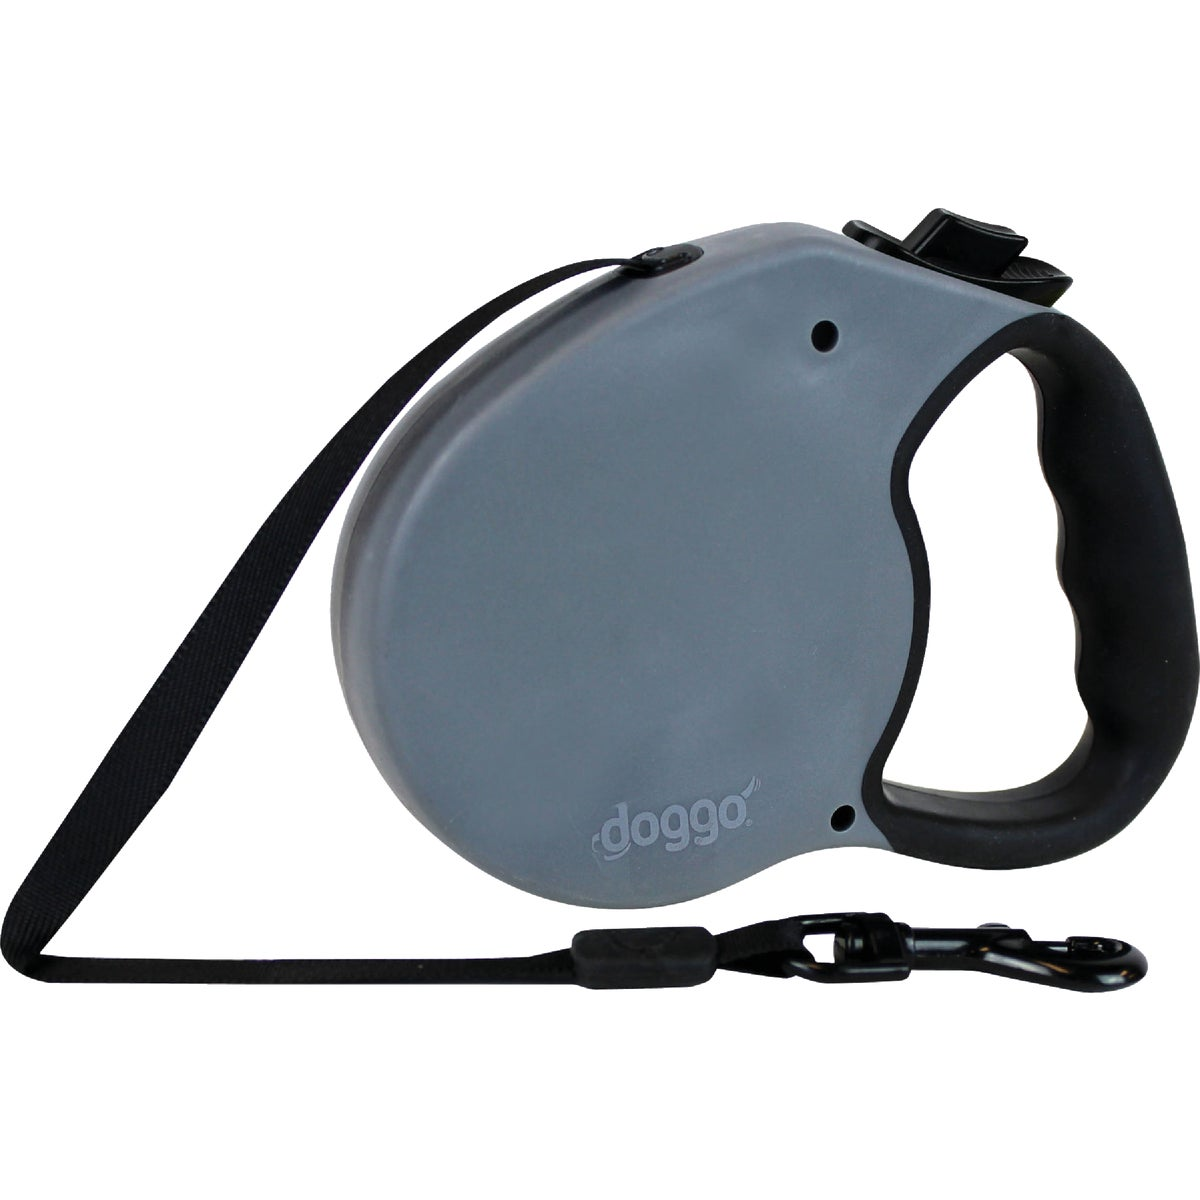 LG BLK RETRACTABLE LEASH - 3-5BK by Flexi Usa Inc